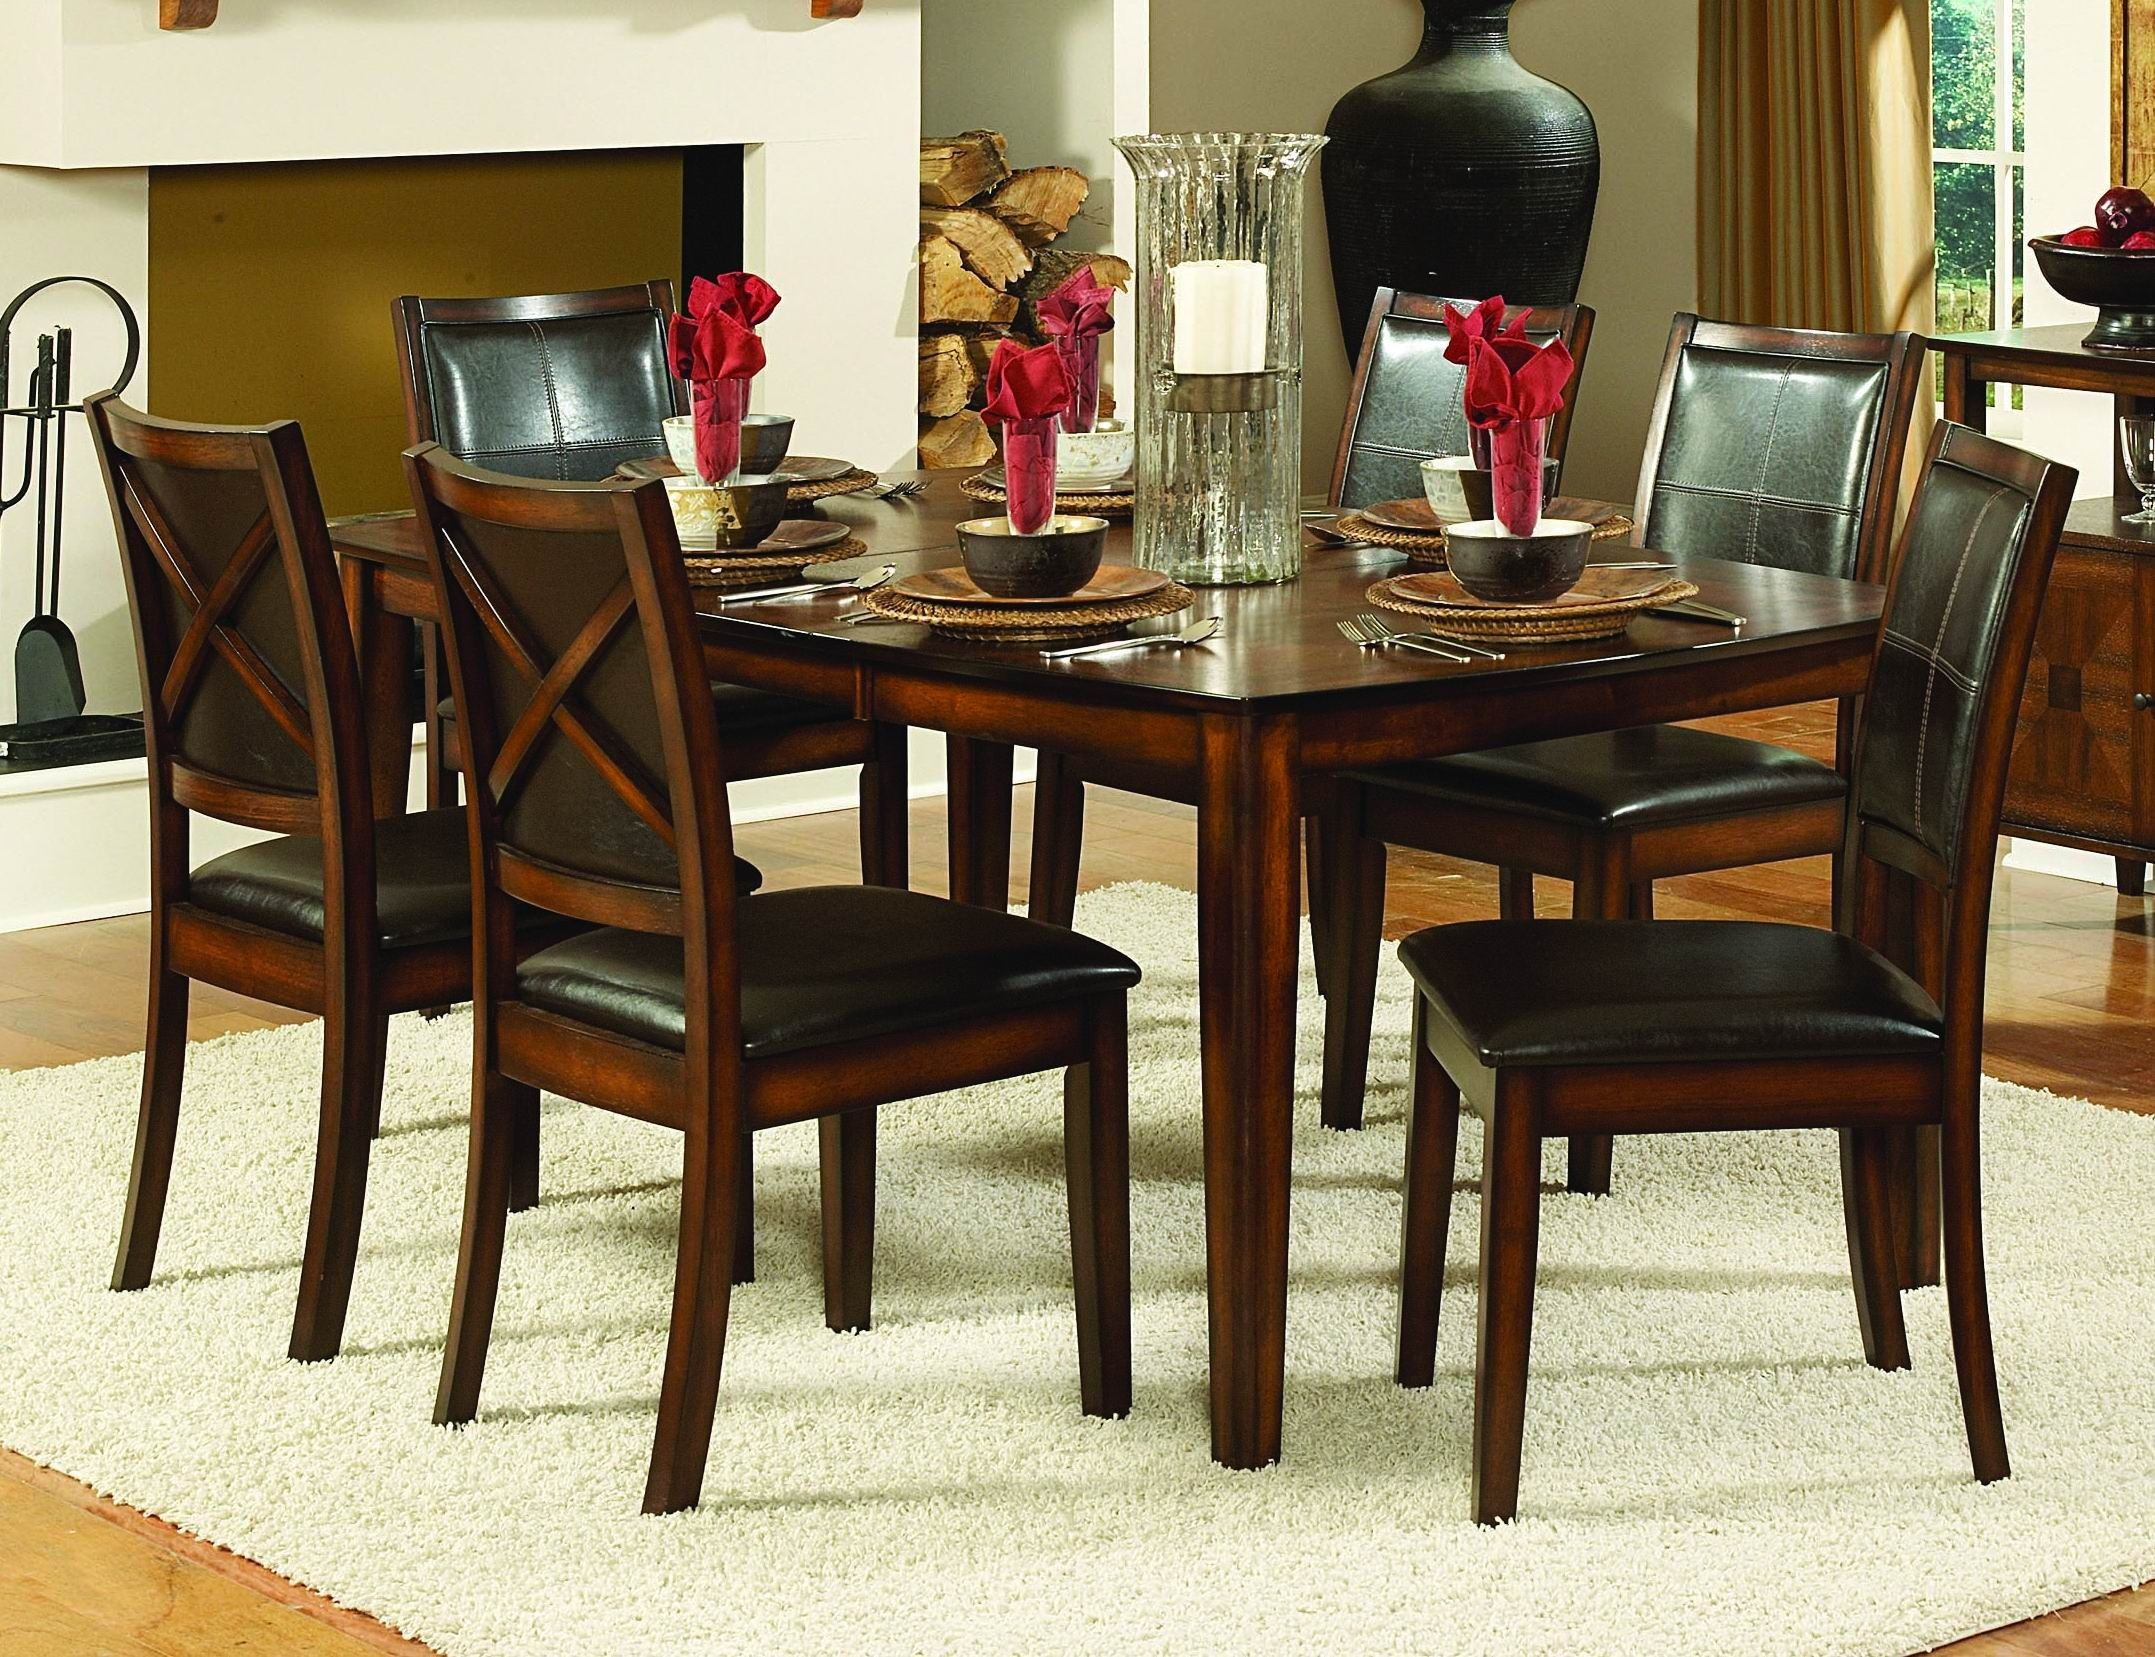 Verona Extendable Dining Room Set From Homelegance 727 72 Coleman Furniture